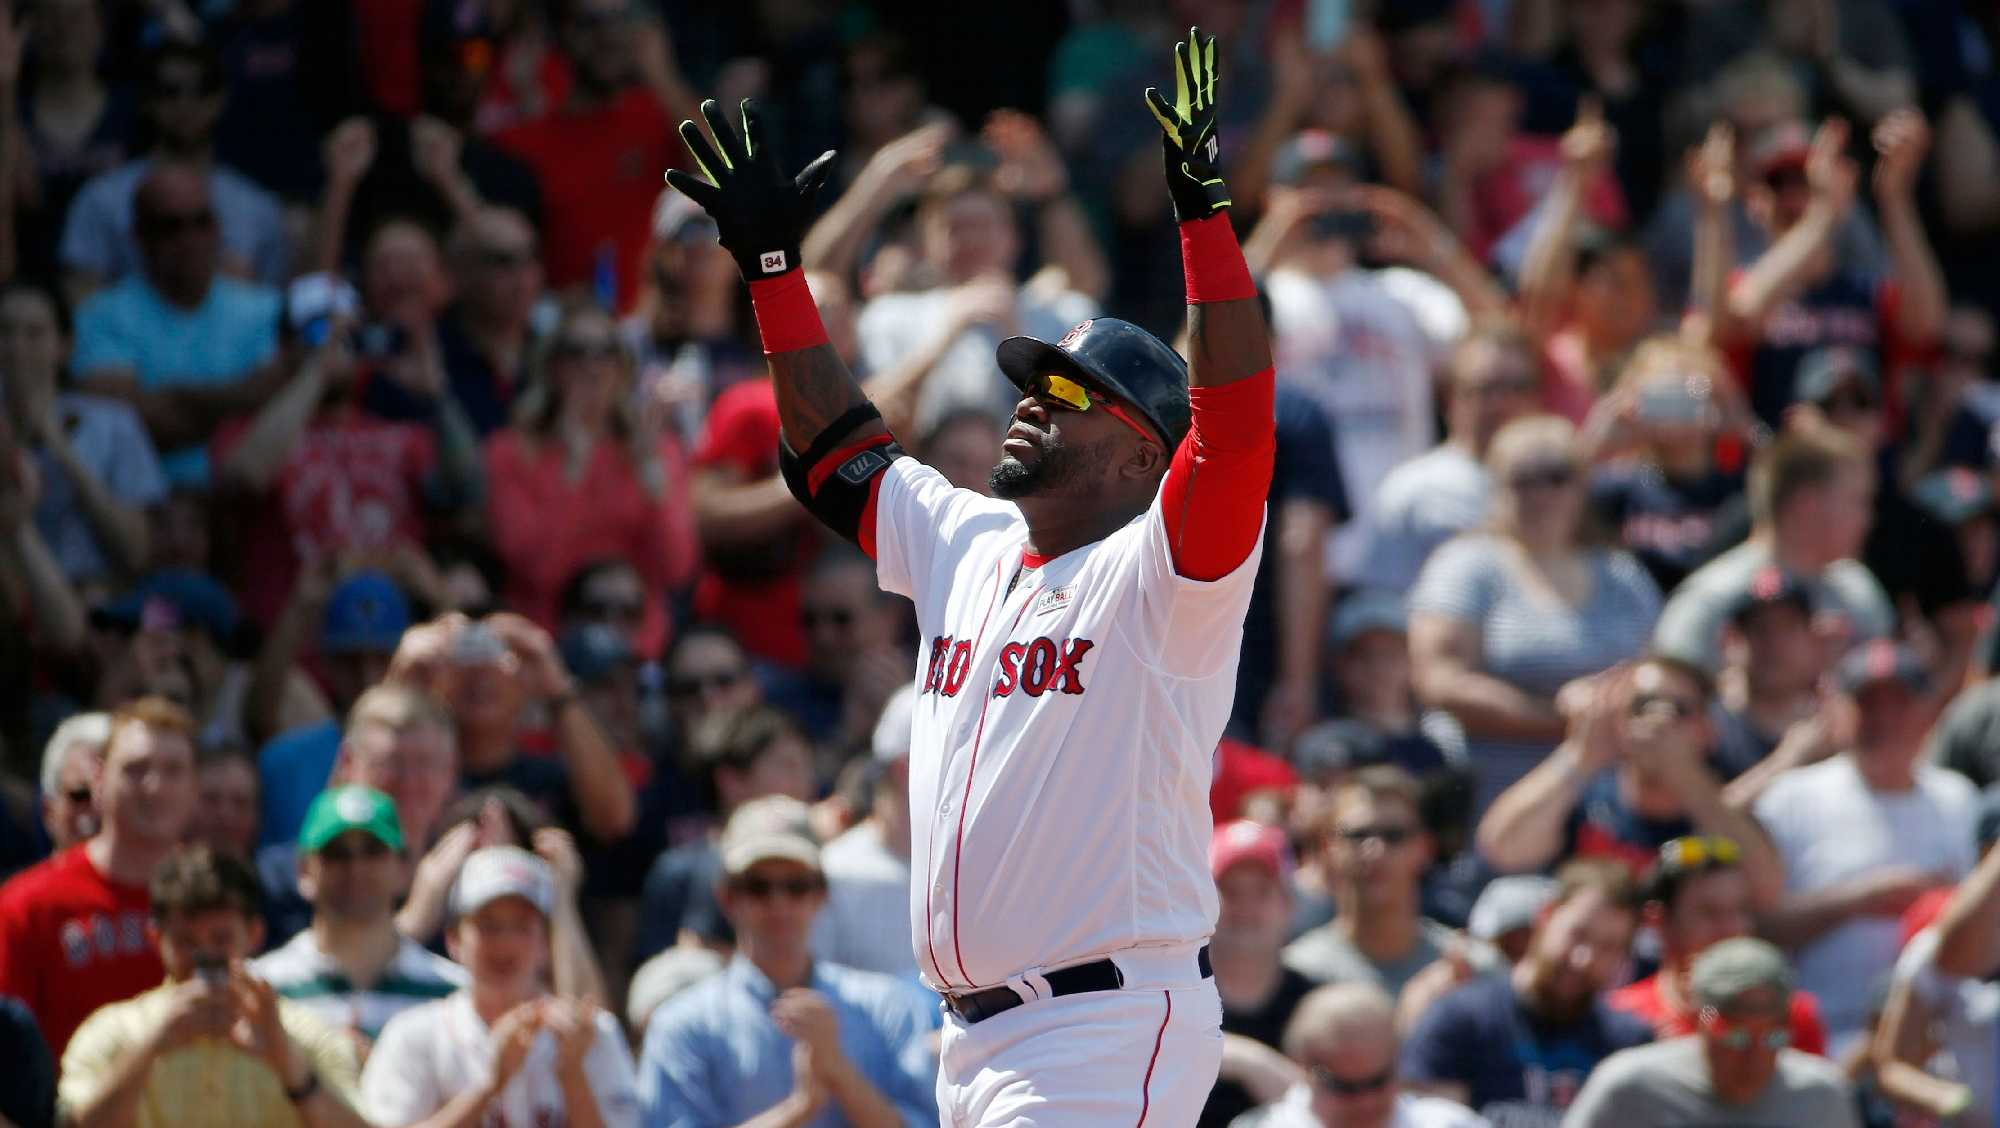 Red Sox announce plans to retire David Ortiz' No. 34